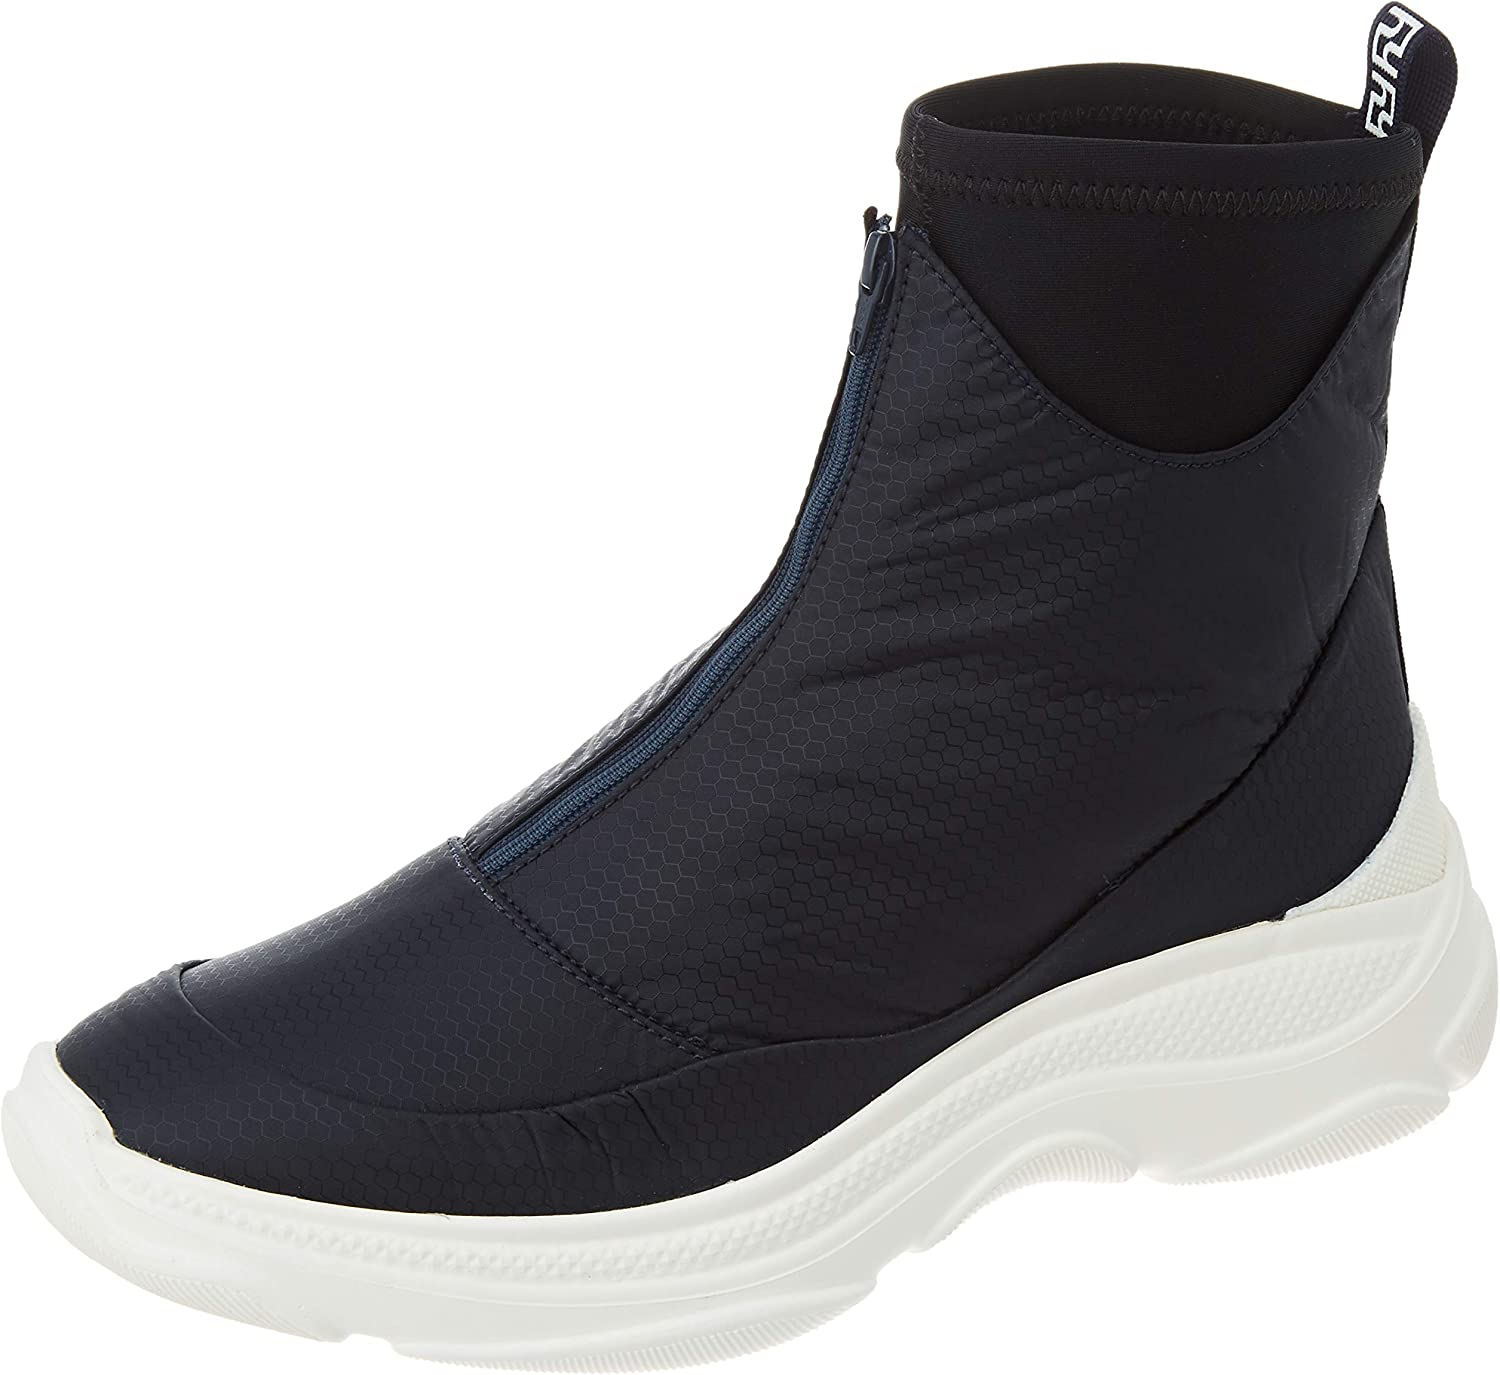 HÖGL Ranking TOP13 Financial sales sale Women's Ankle Boot